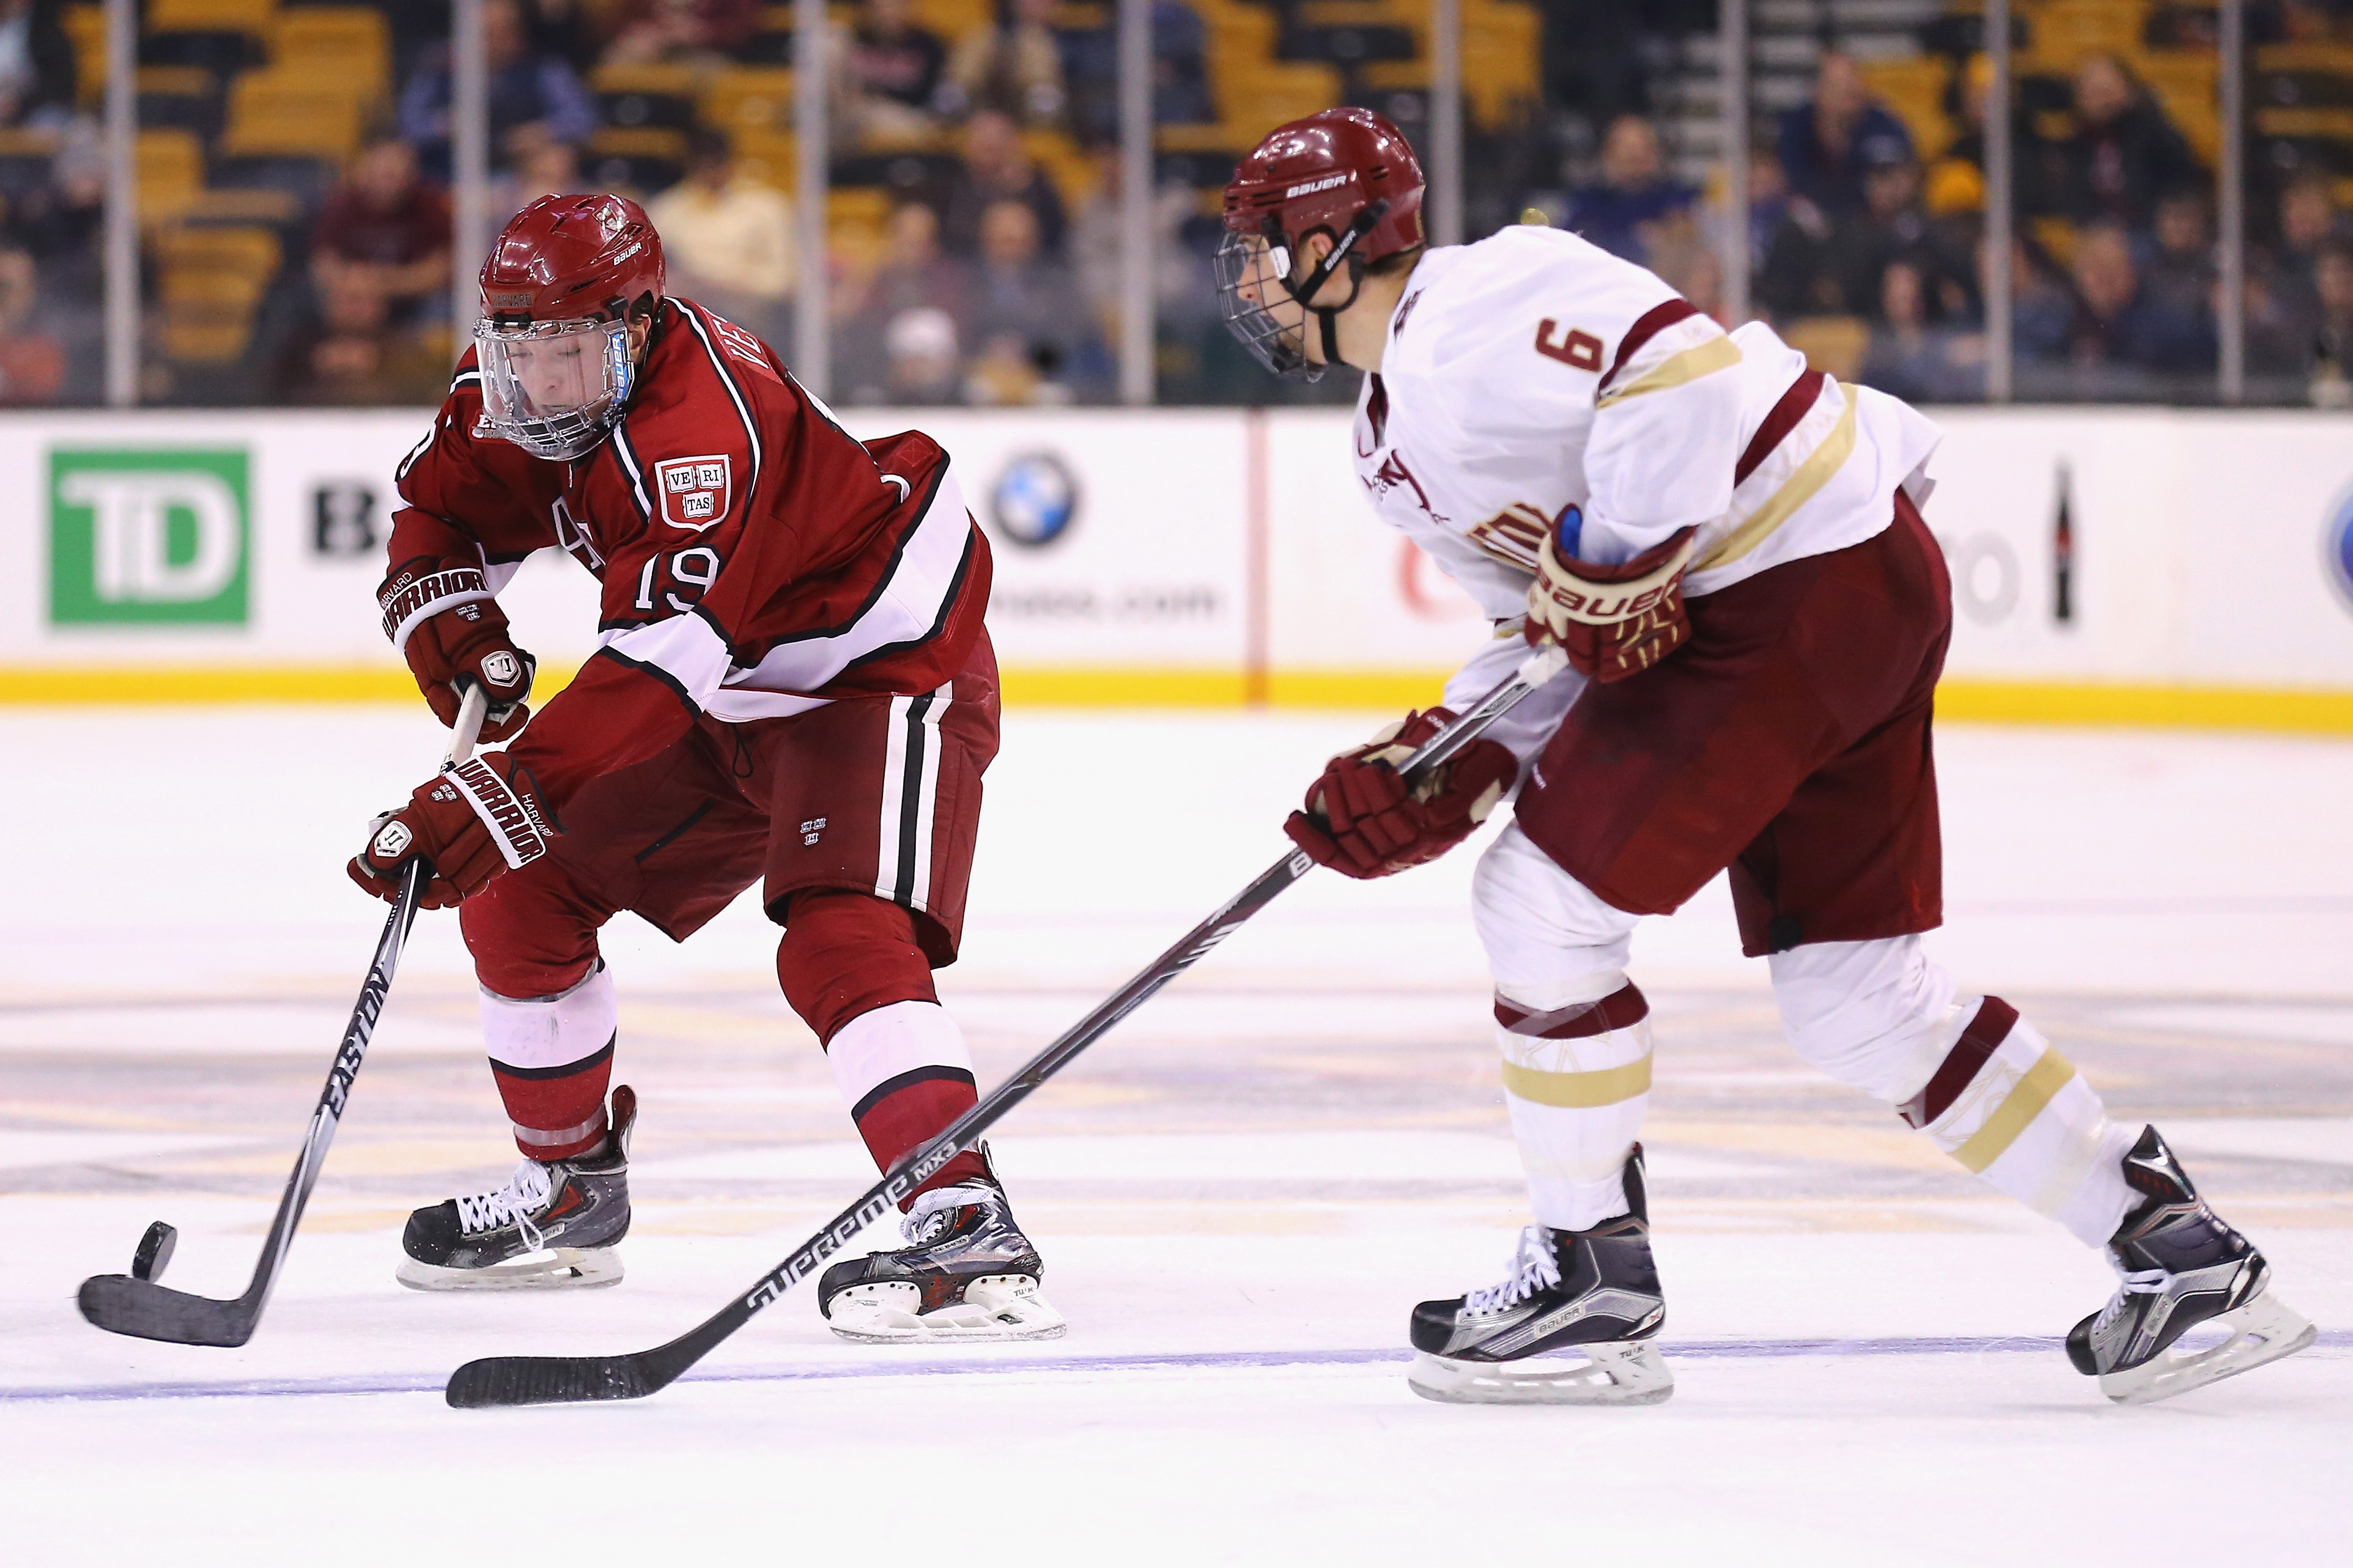 NCAA: Northeast Regional Loaded With NHL Prospects